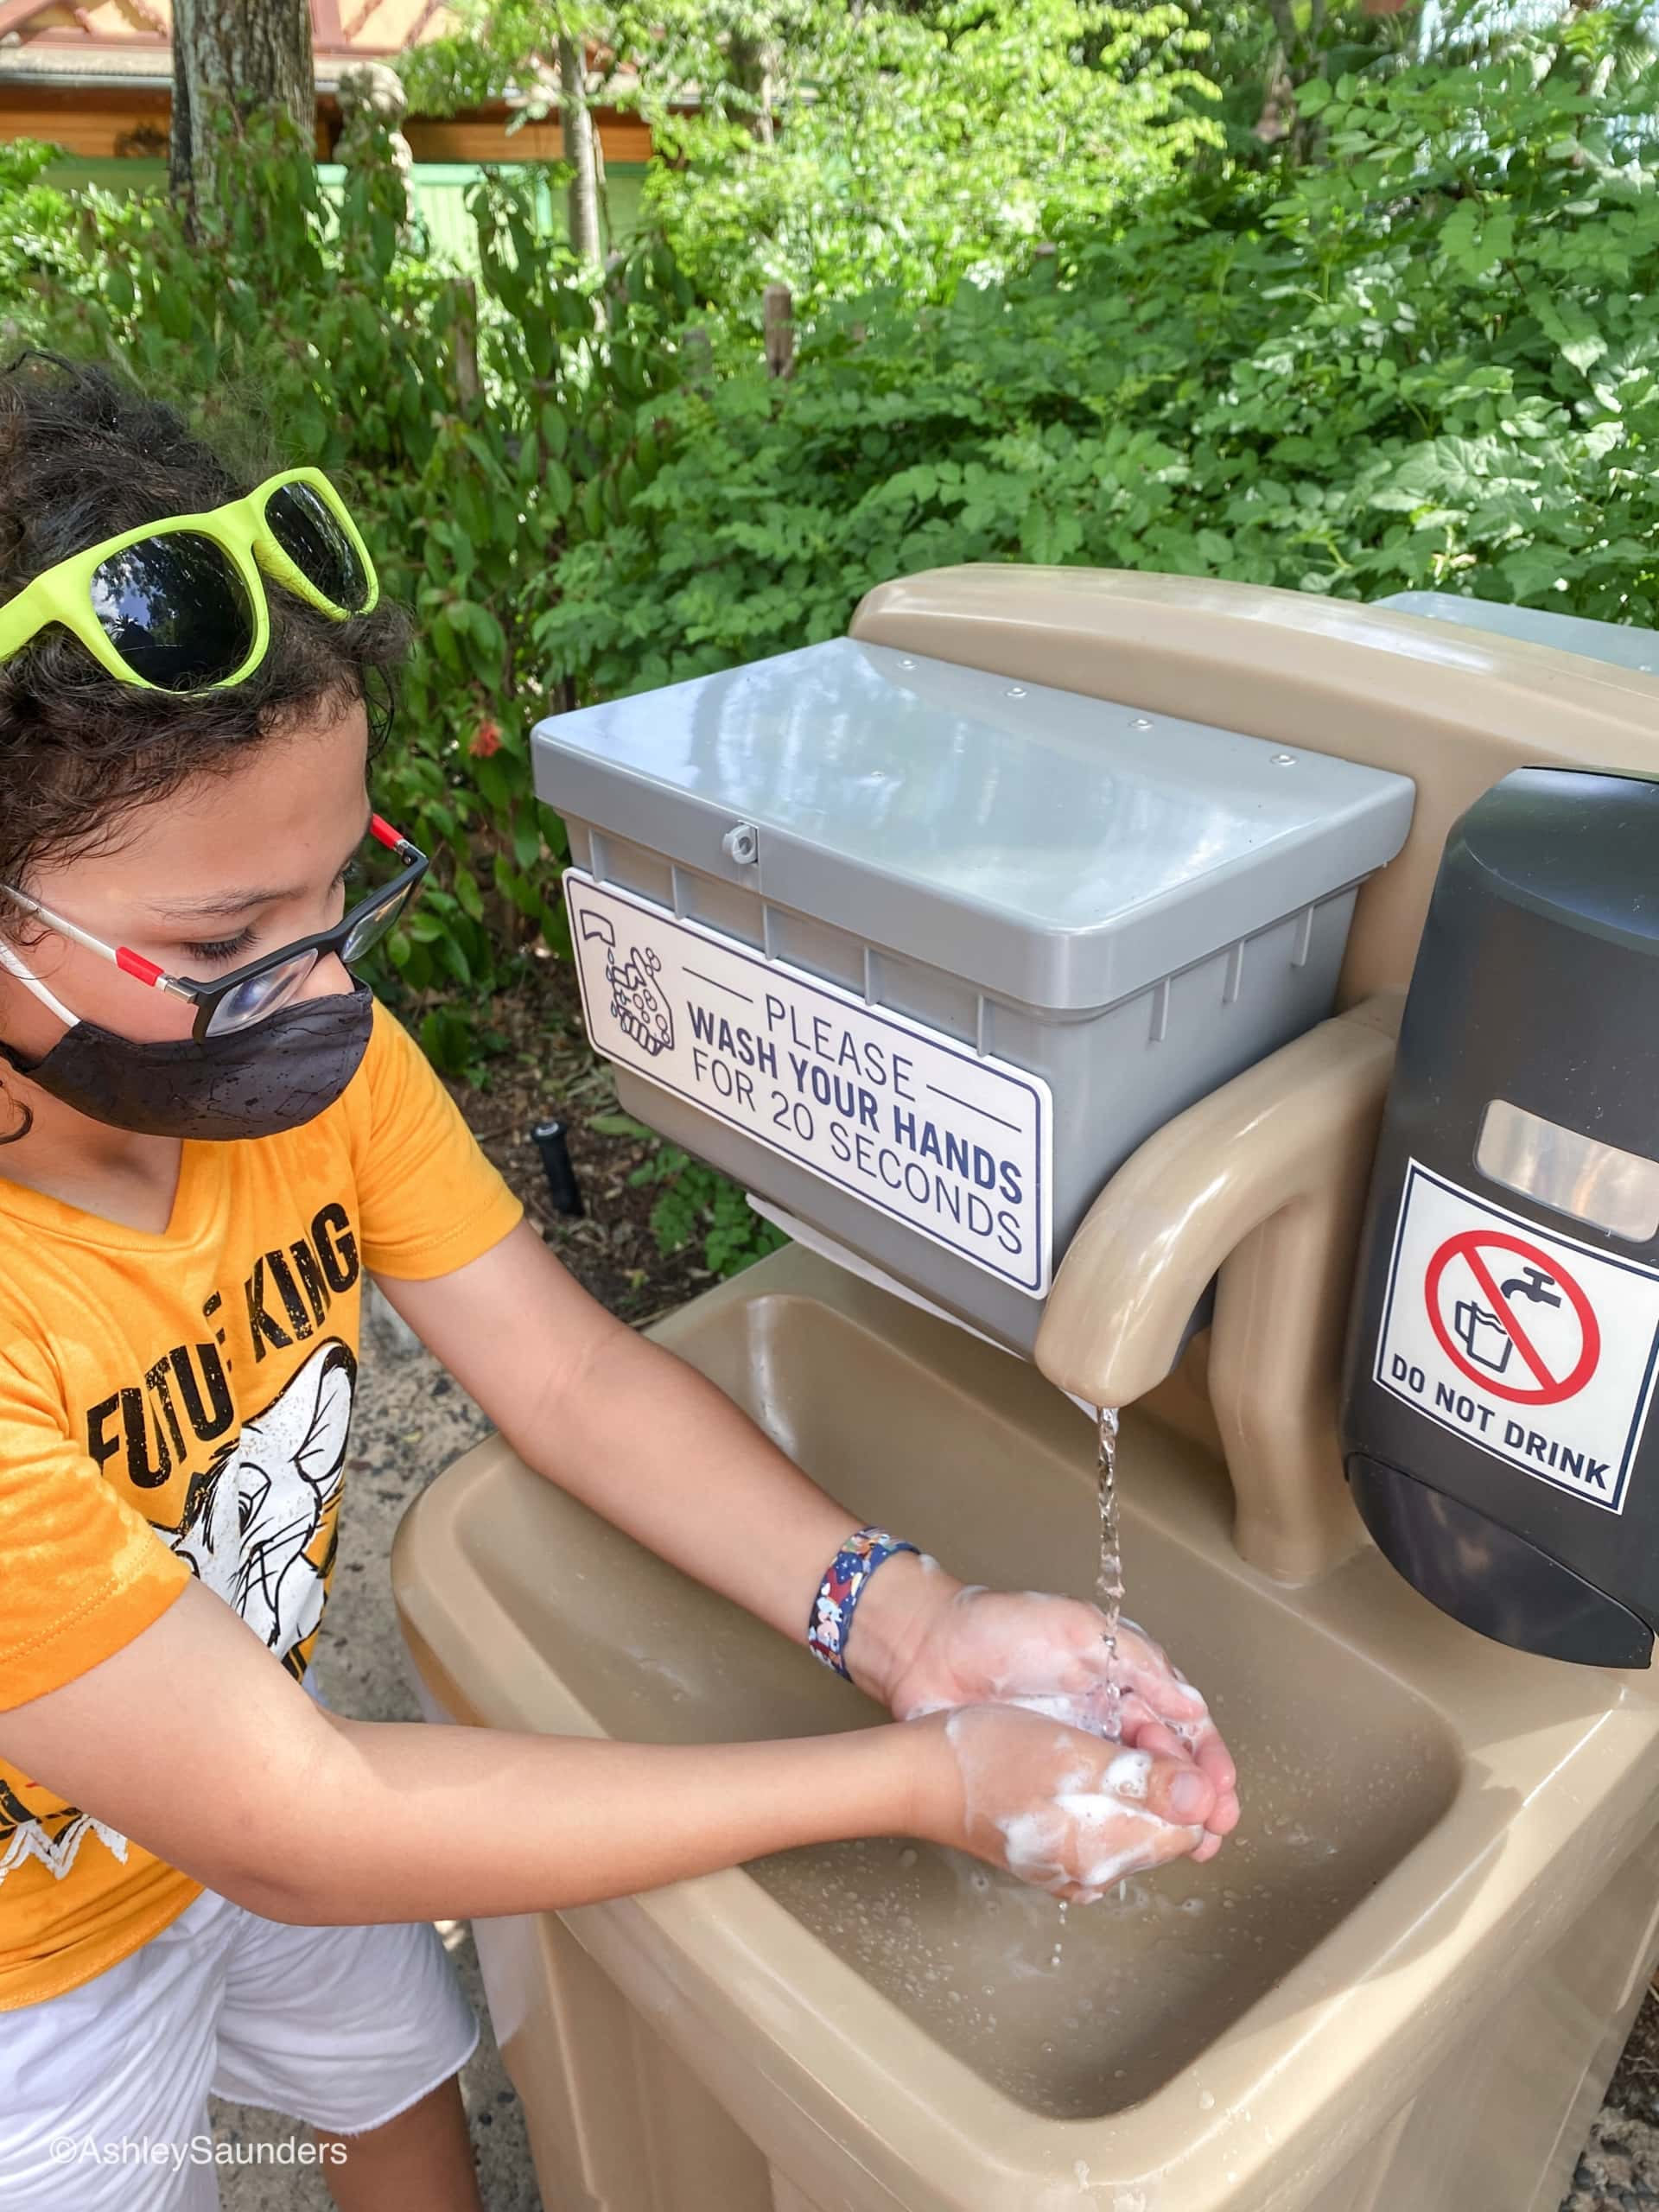 Disney World in 2020 Hand washing Stations